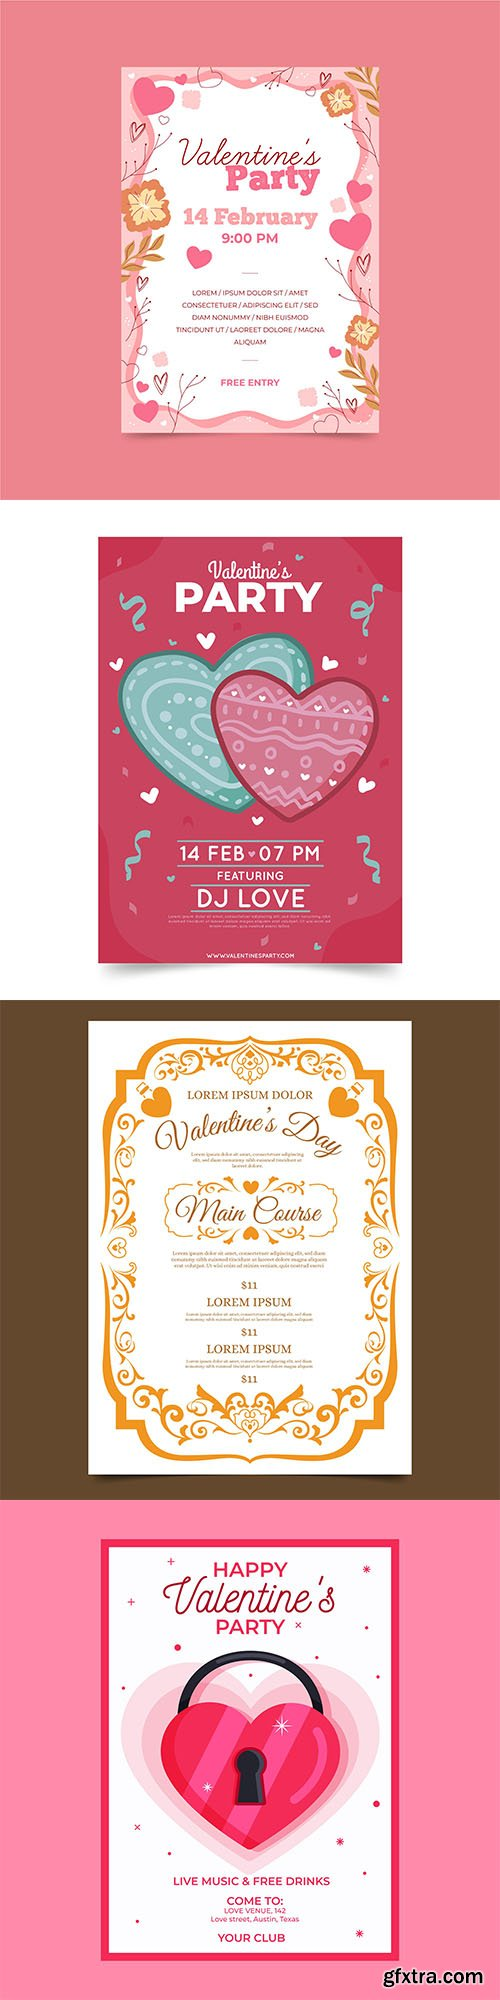 Hand-drawn valentines day party poster template